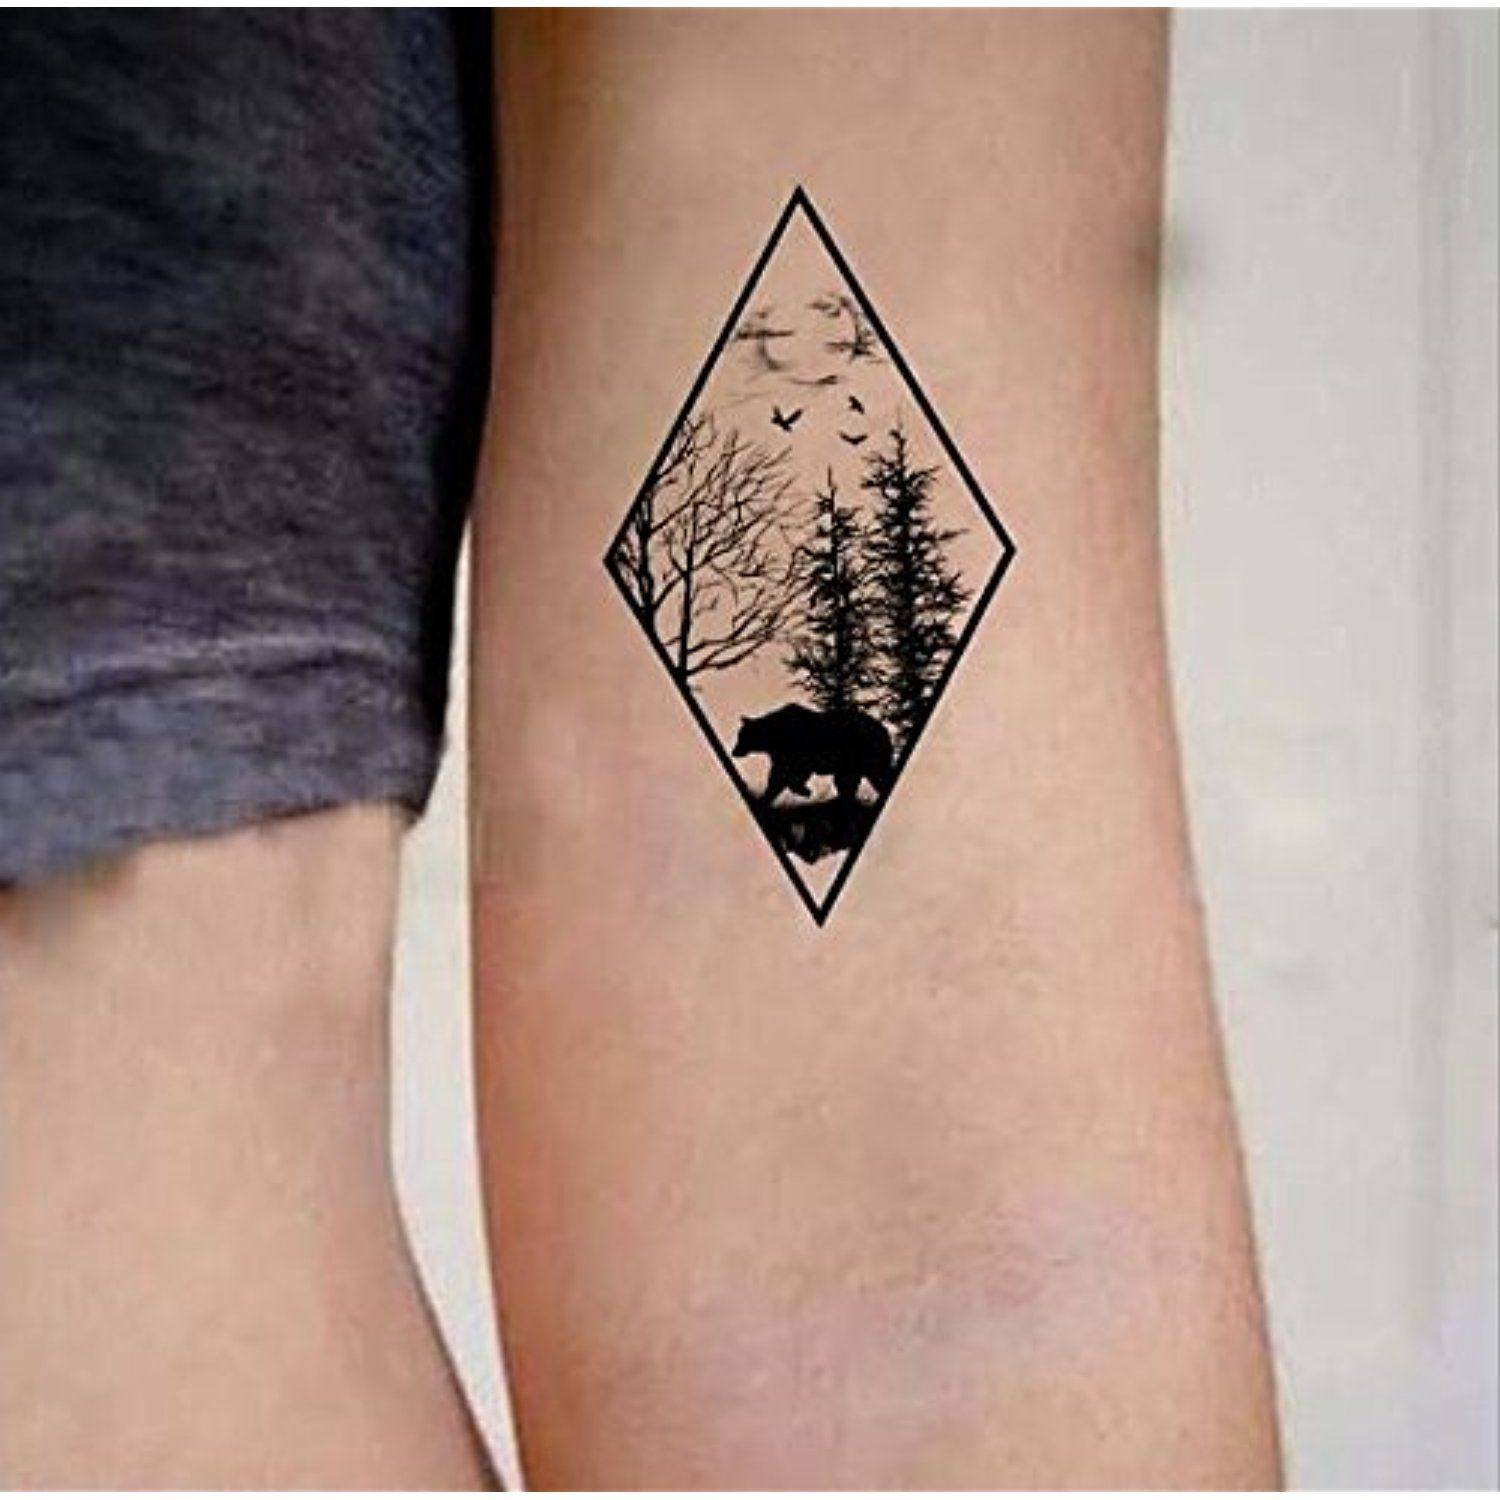 e88393f14 Set of 2 Waterproof Temporary Fake Tattoo Stickers Vintage Geometric Black  Forest Bear Tree *** See this great product. (This is an affiliate link) # Makeup